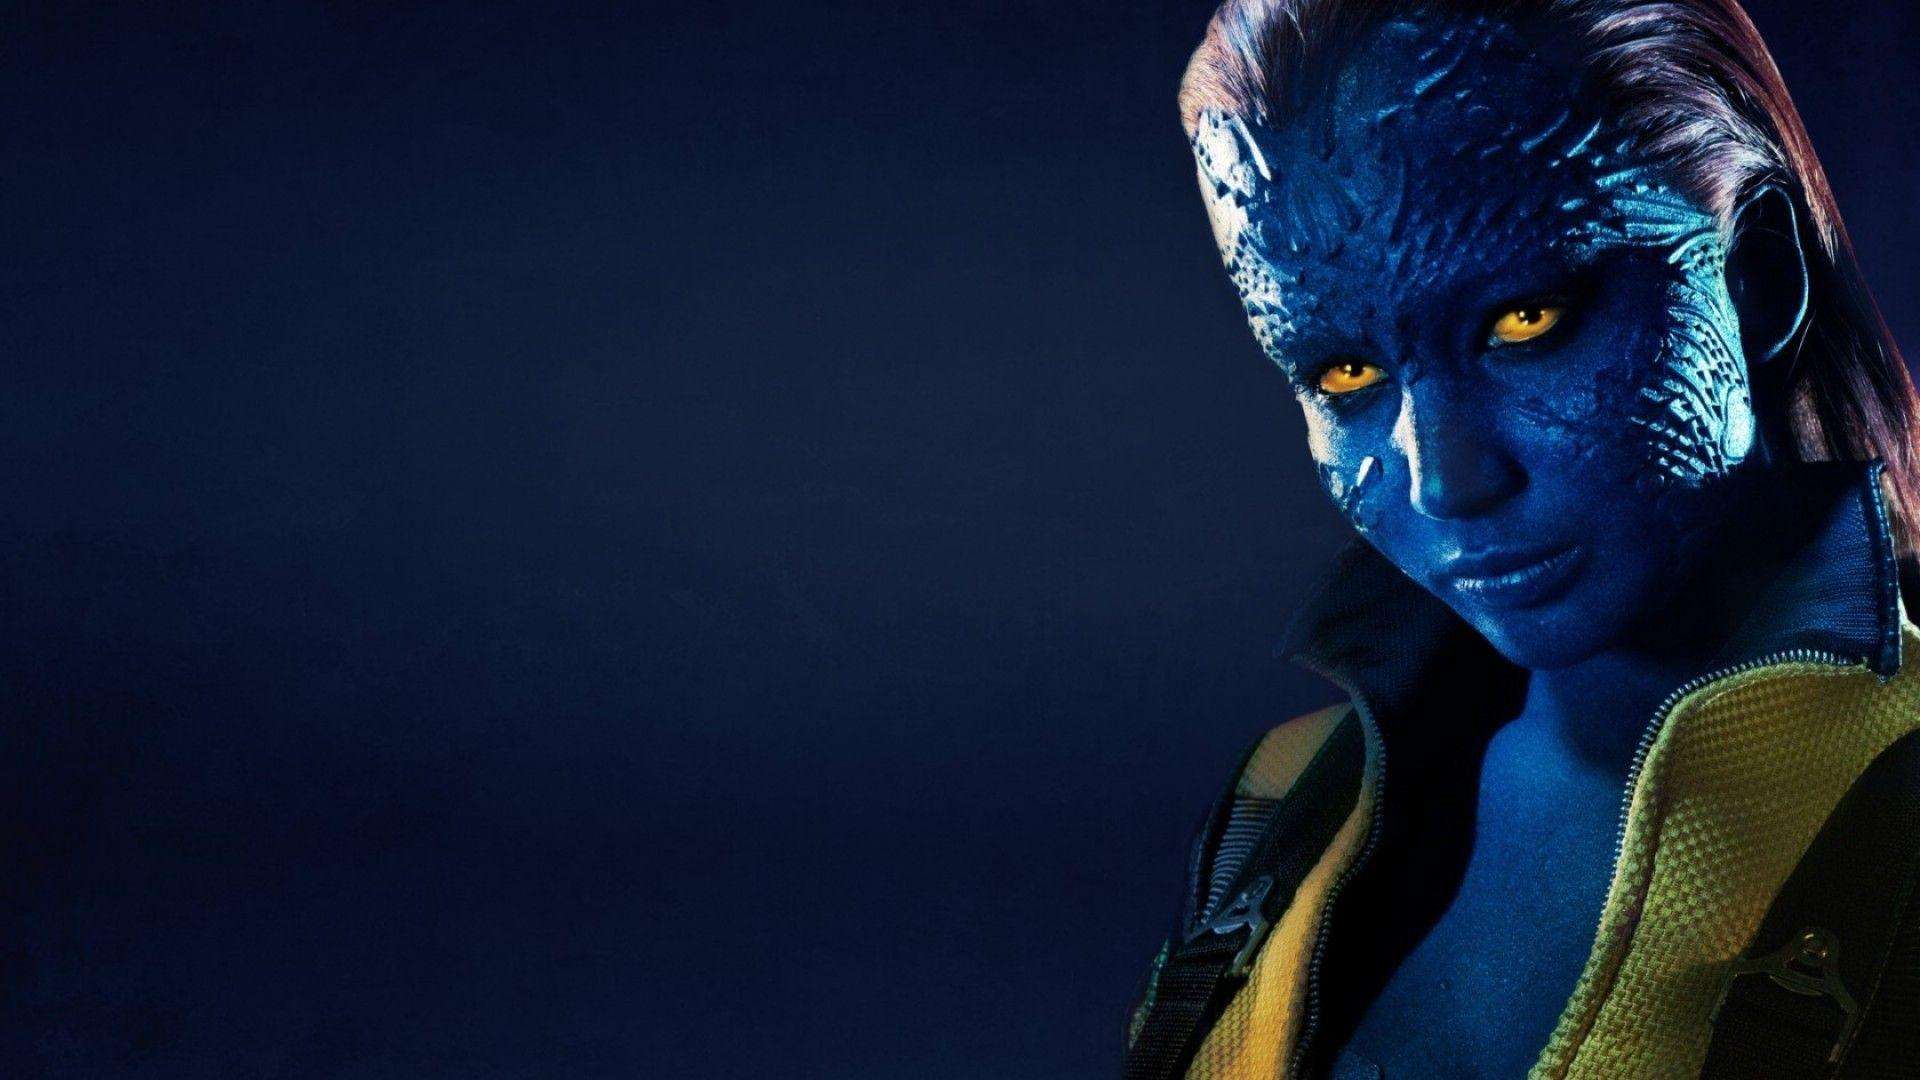 Jennifer Lawrence as Mystique | Wallpic.us